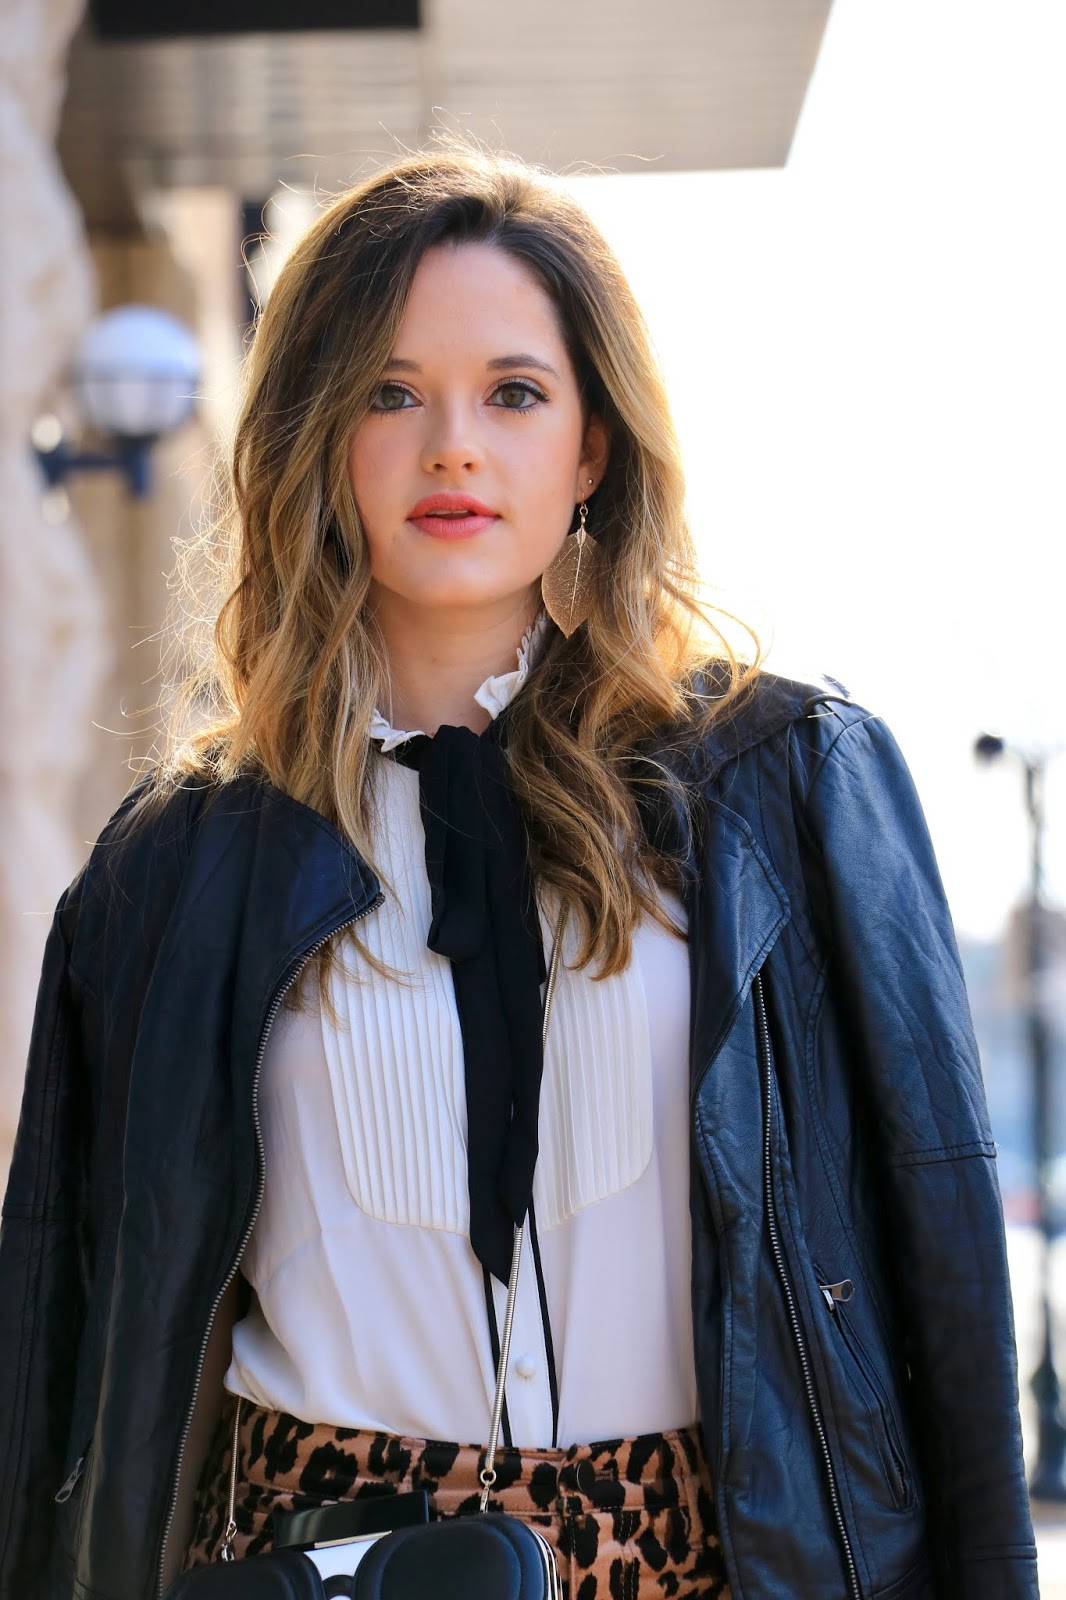 Nyc fashion blogger Kathleen Harper's necktie blouse outfit